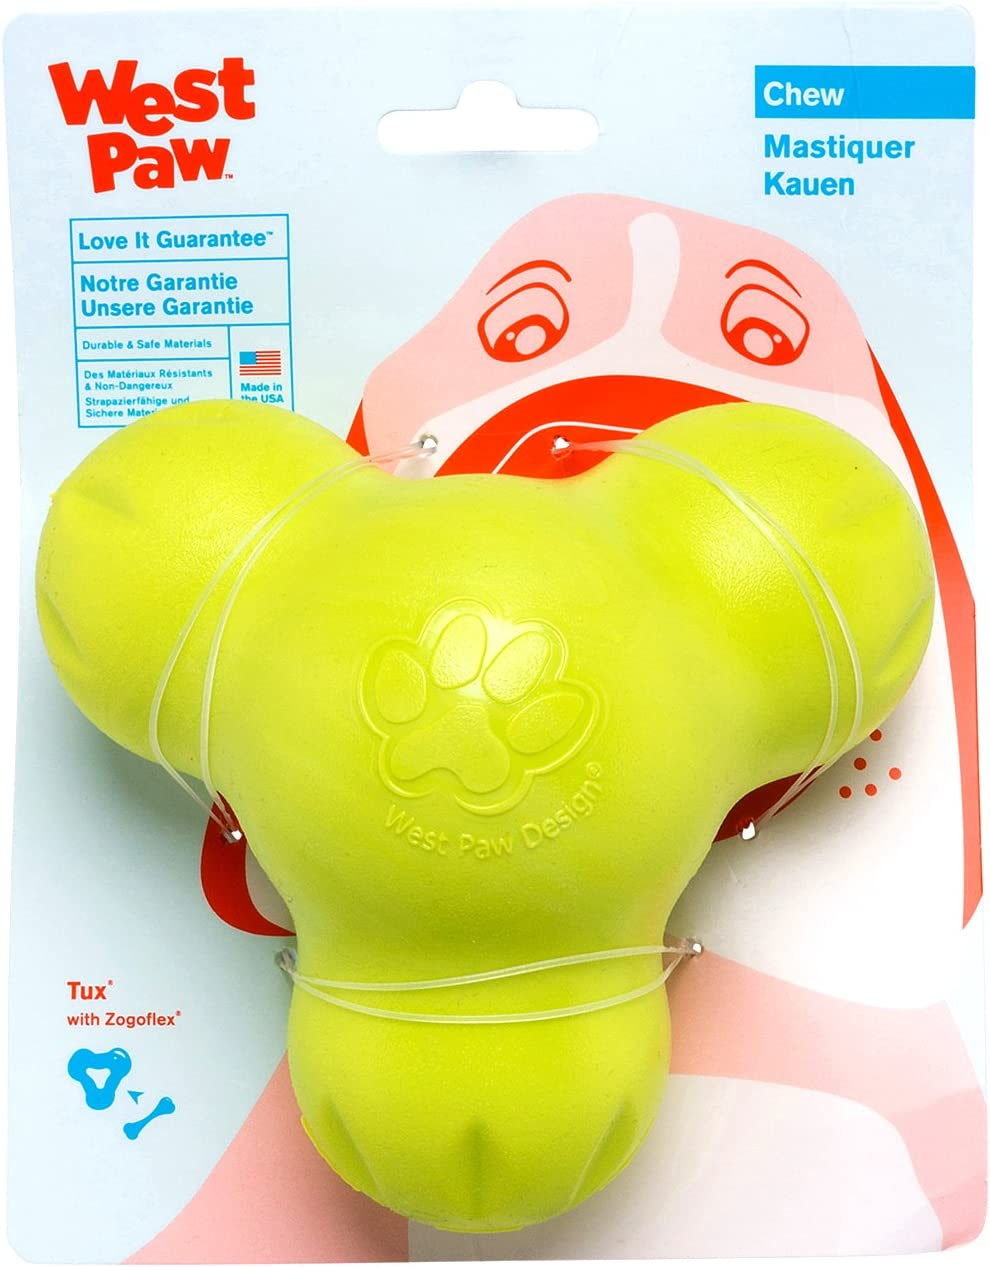 West Paw Zogoflex Tux Treat Dispensing Dog Chew Toy – Interactive Chewing Toys for Dogs – Dog Games for Aggressive Chewers, Fetch, Catch – Holds Kibble, Treats, Made in USA, Small, Granny Smith